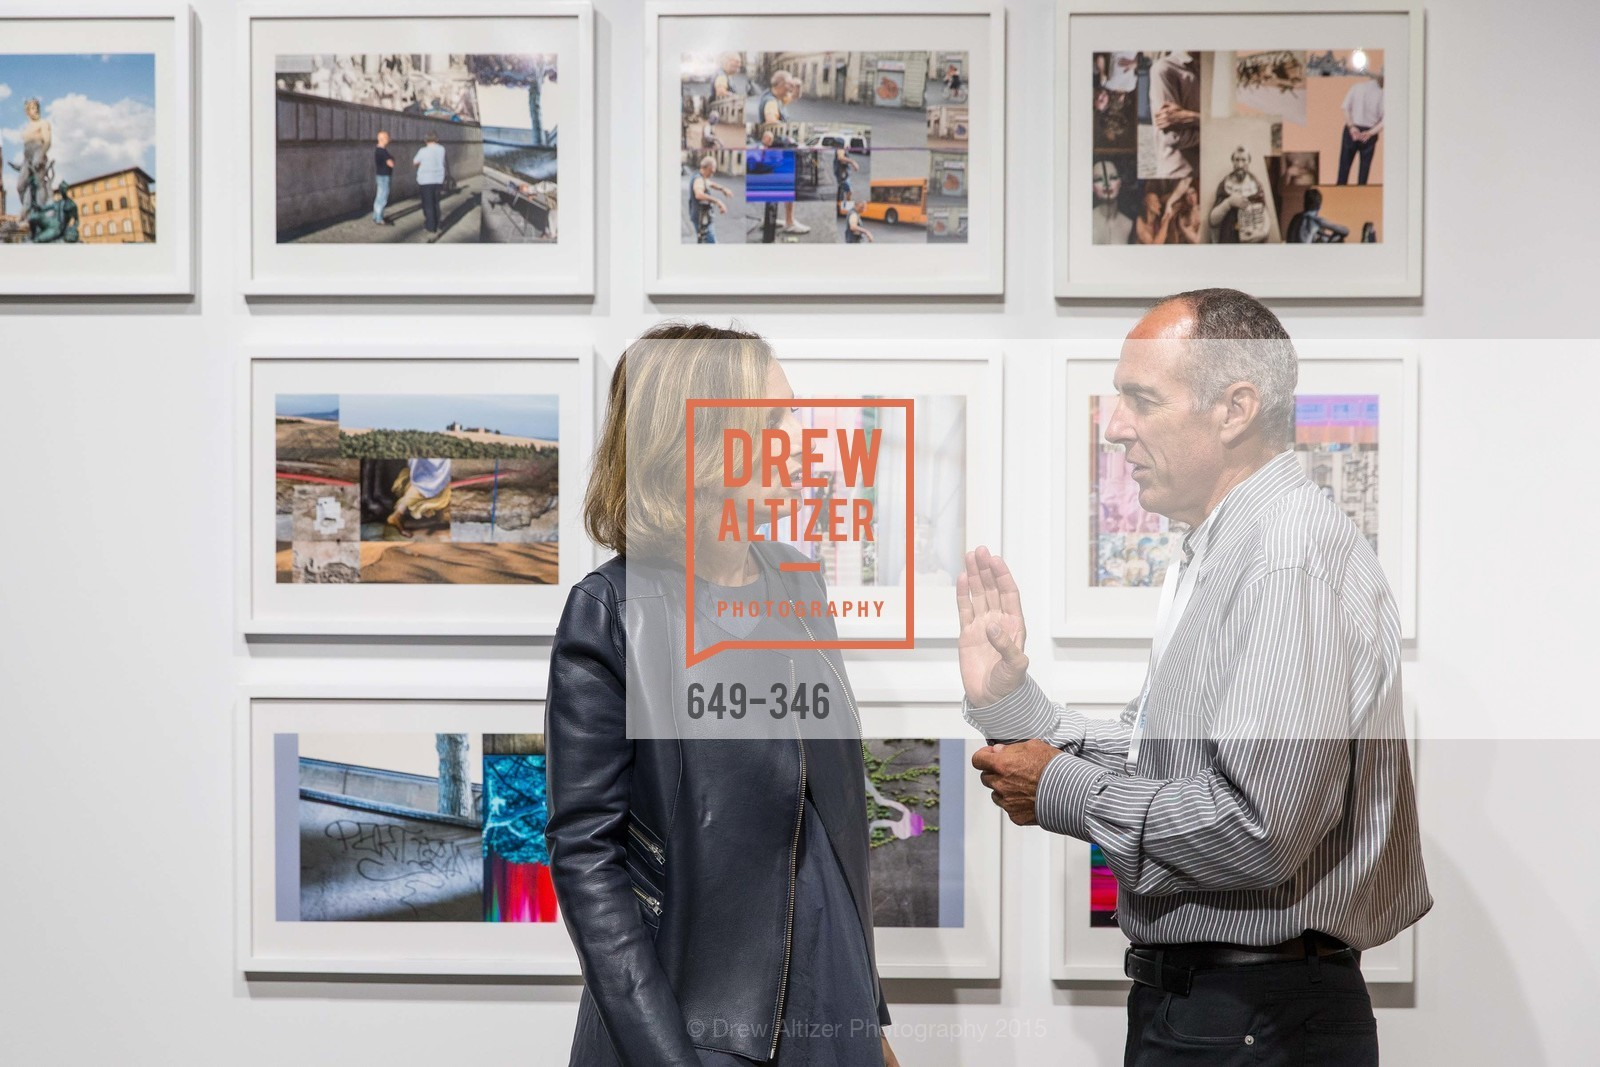 Vanessa Suchar-Marcus, James Lanahan, Art Miami Presents: Art Silicon Valley, San Mateo County Event Center. 1346 Saratoga Dr, October 8th, 2015,Drew Altizer, Drew Altizer Photography, full-service event agency, private events, San Francisco photographer, photographer California